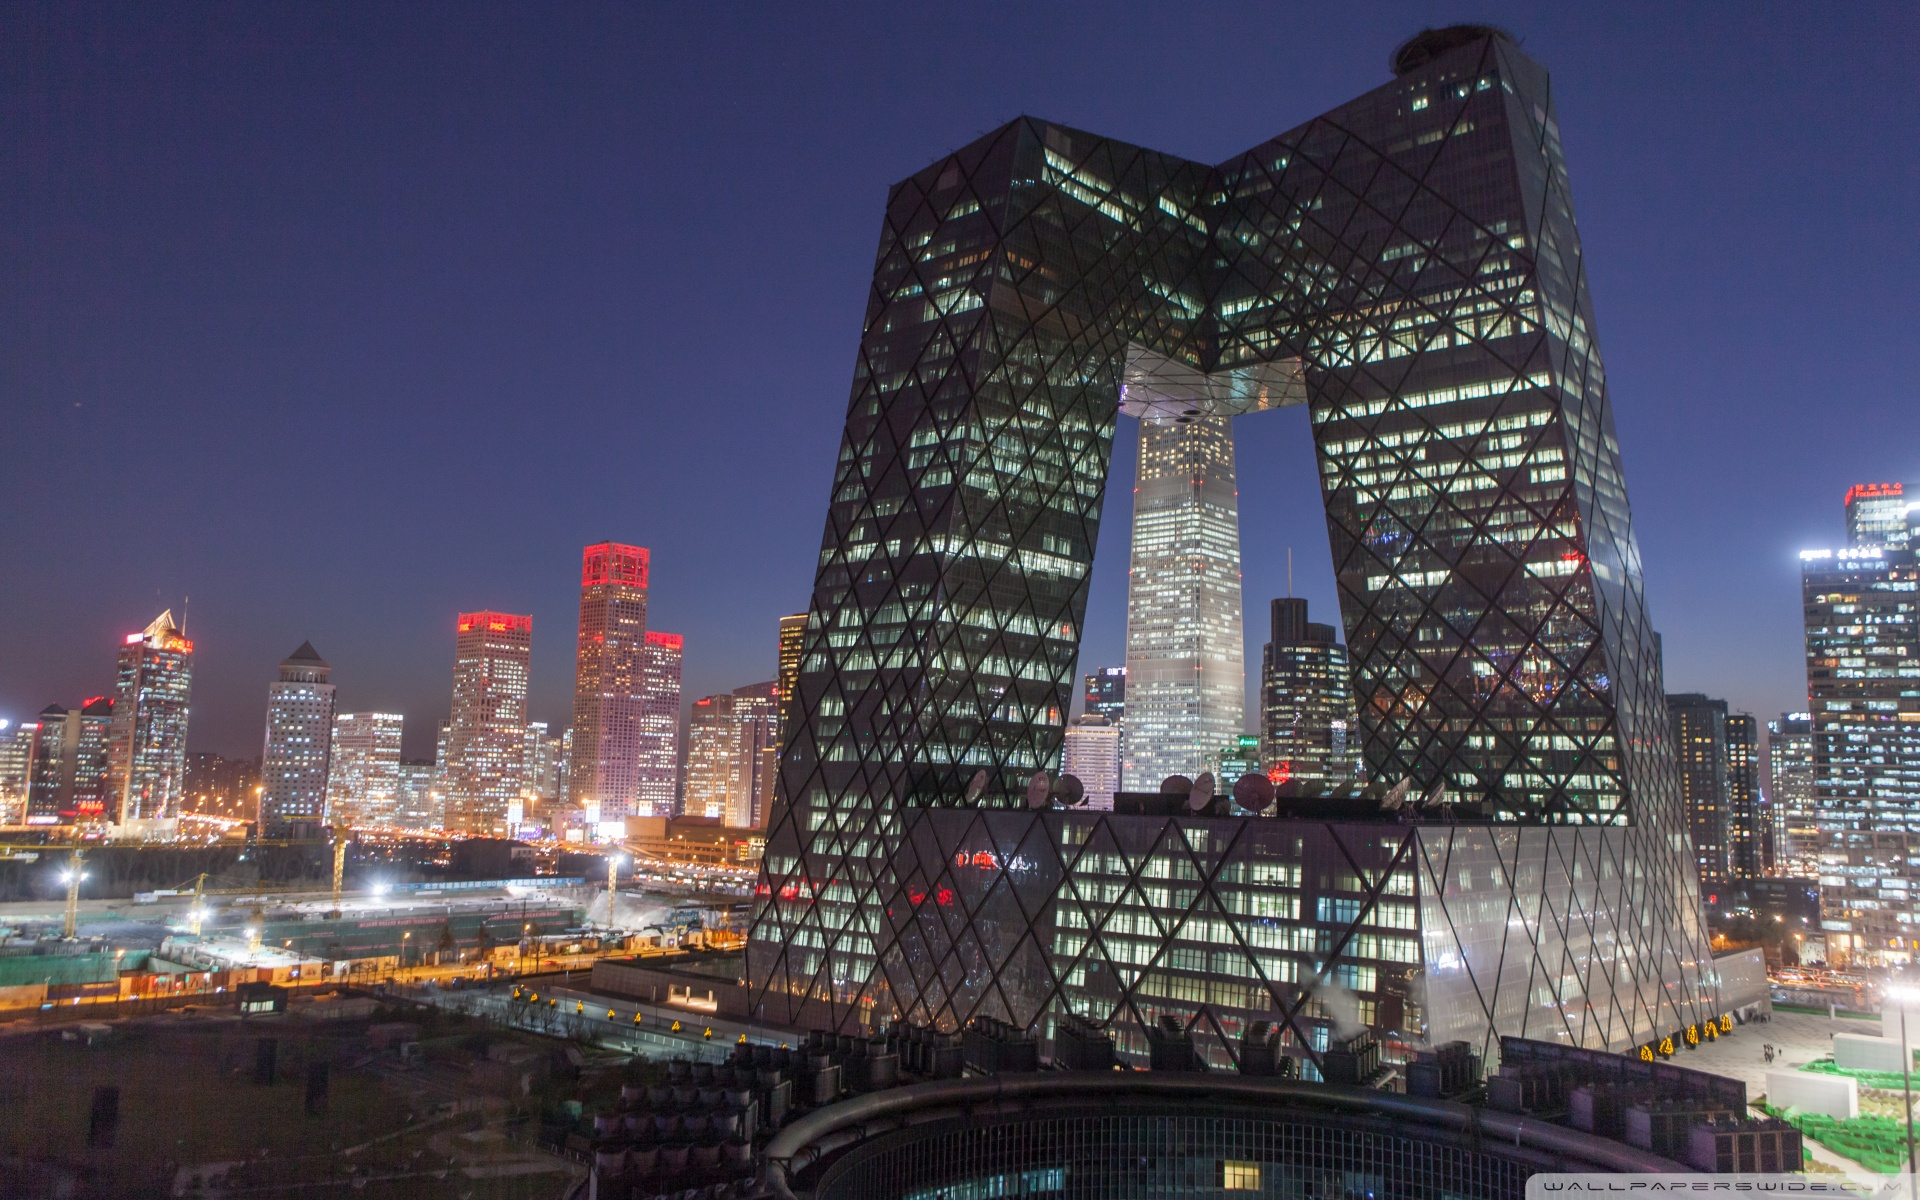 cctv_building_beijing_china-wallpaper-1920x1200.jpg